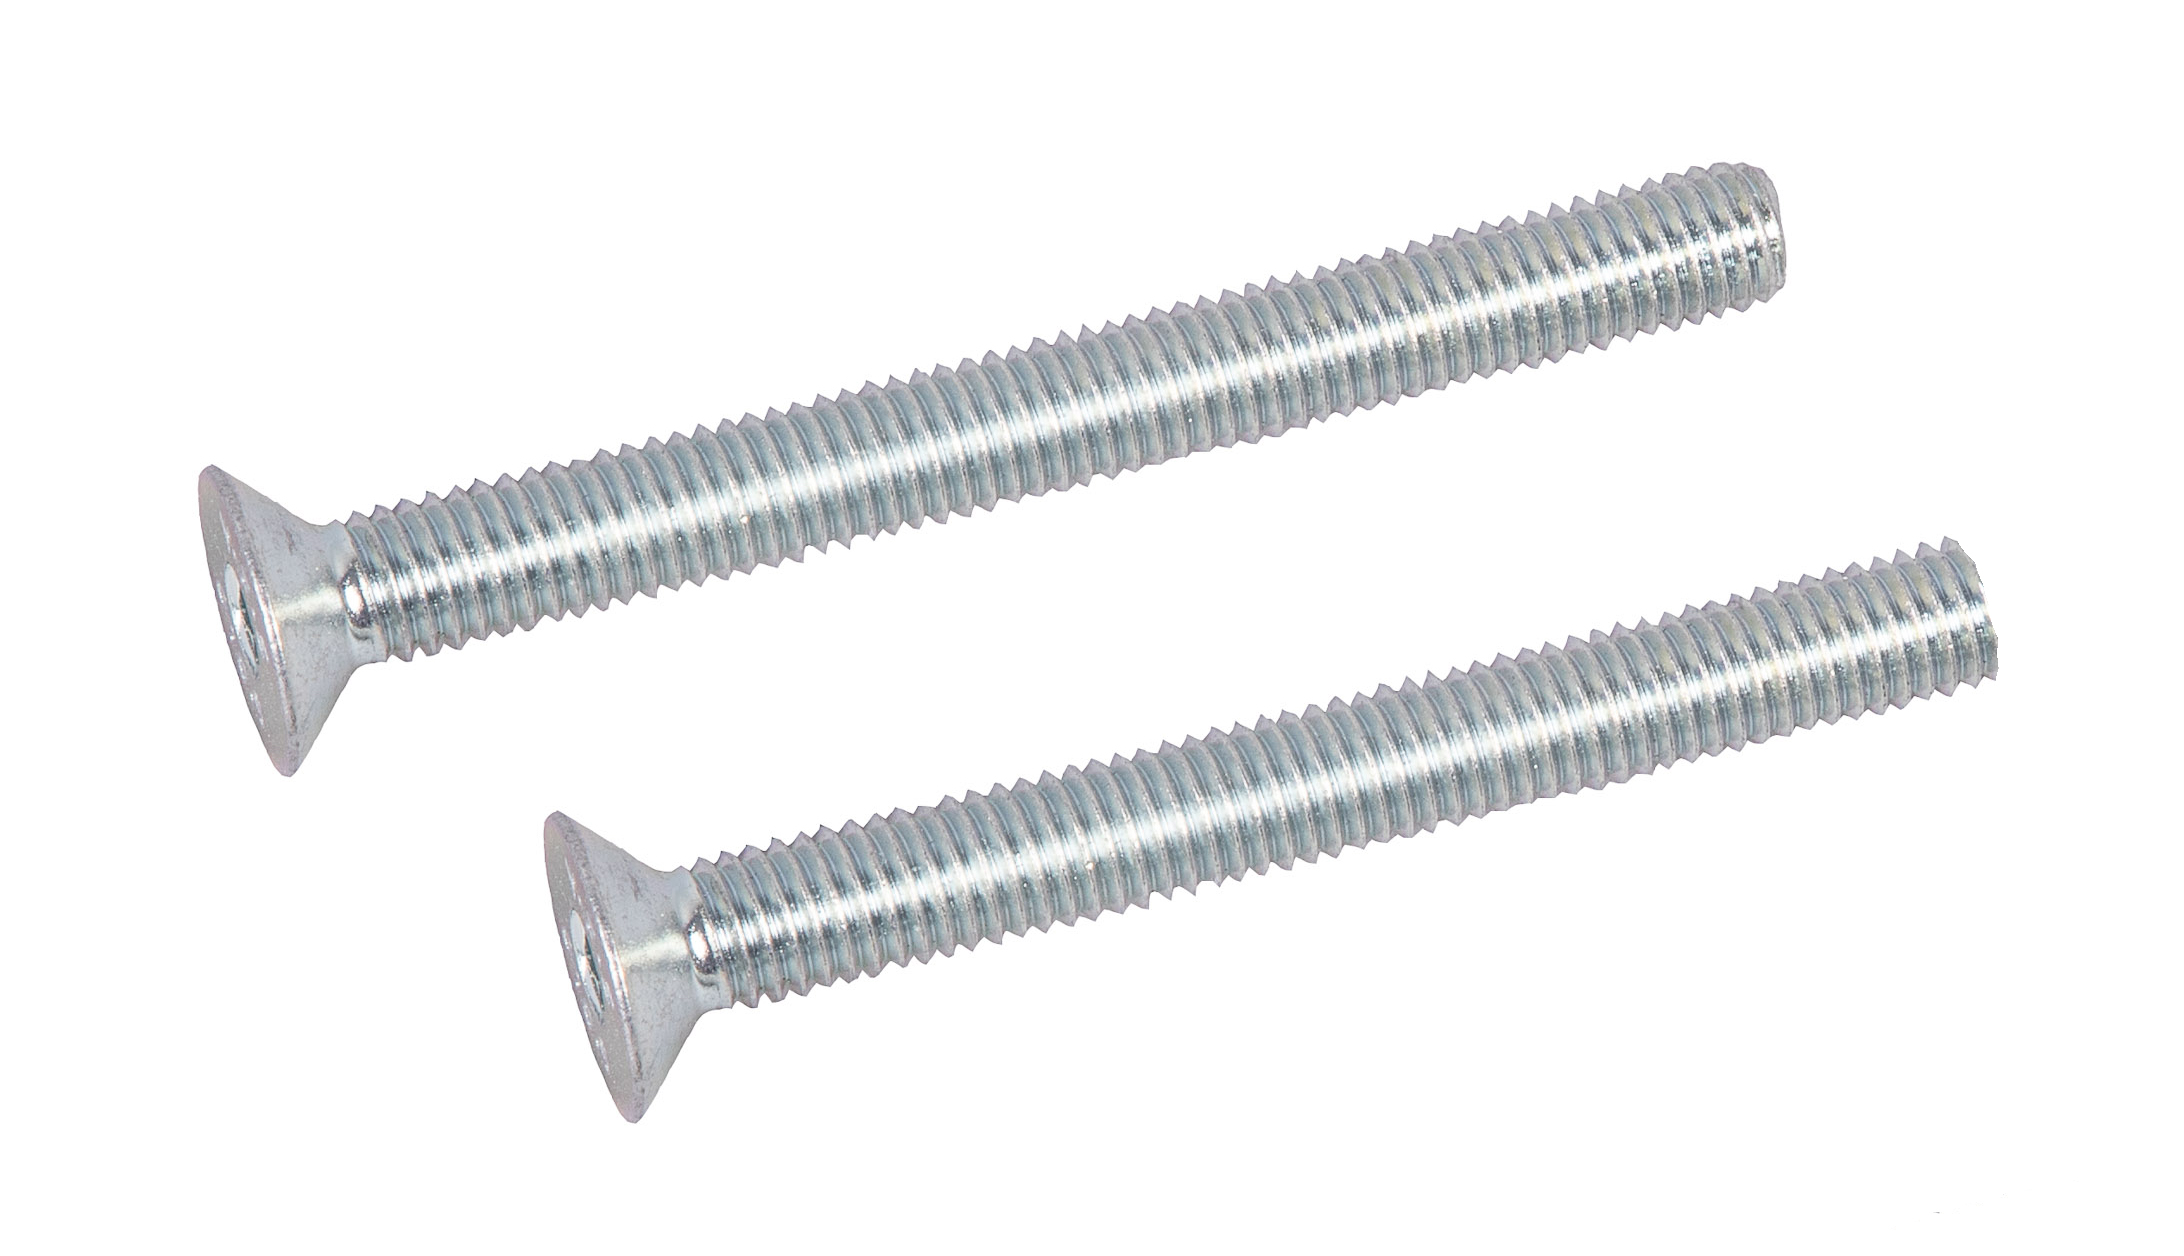 ARM-BOLTS